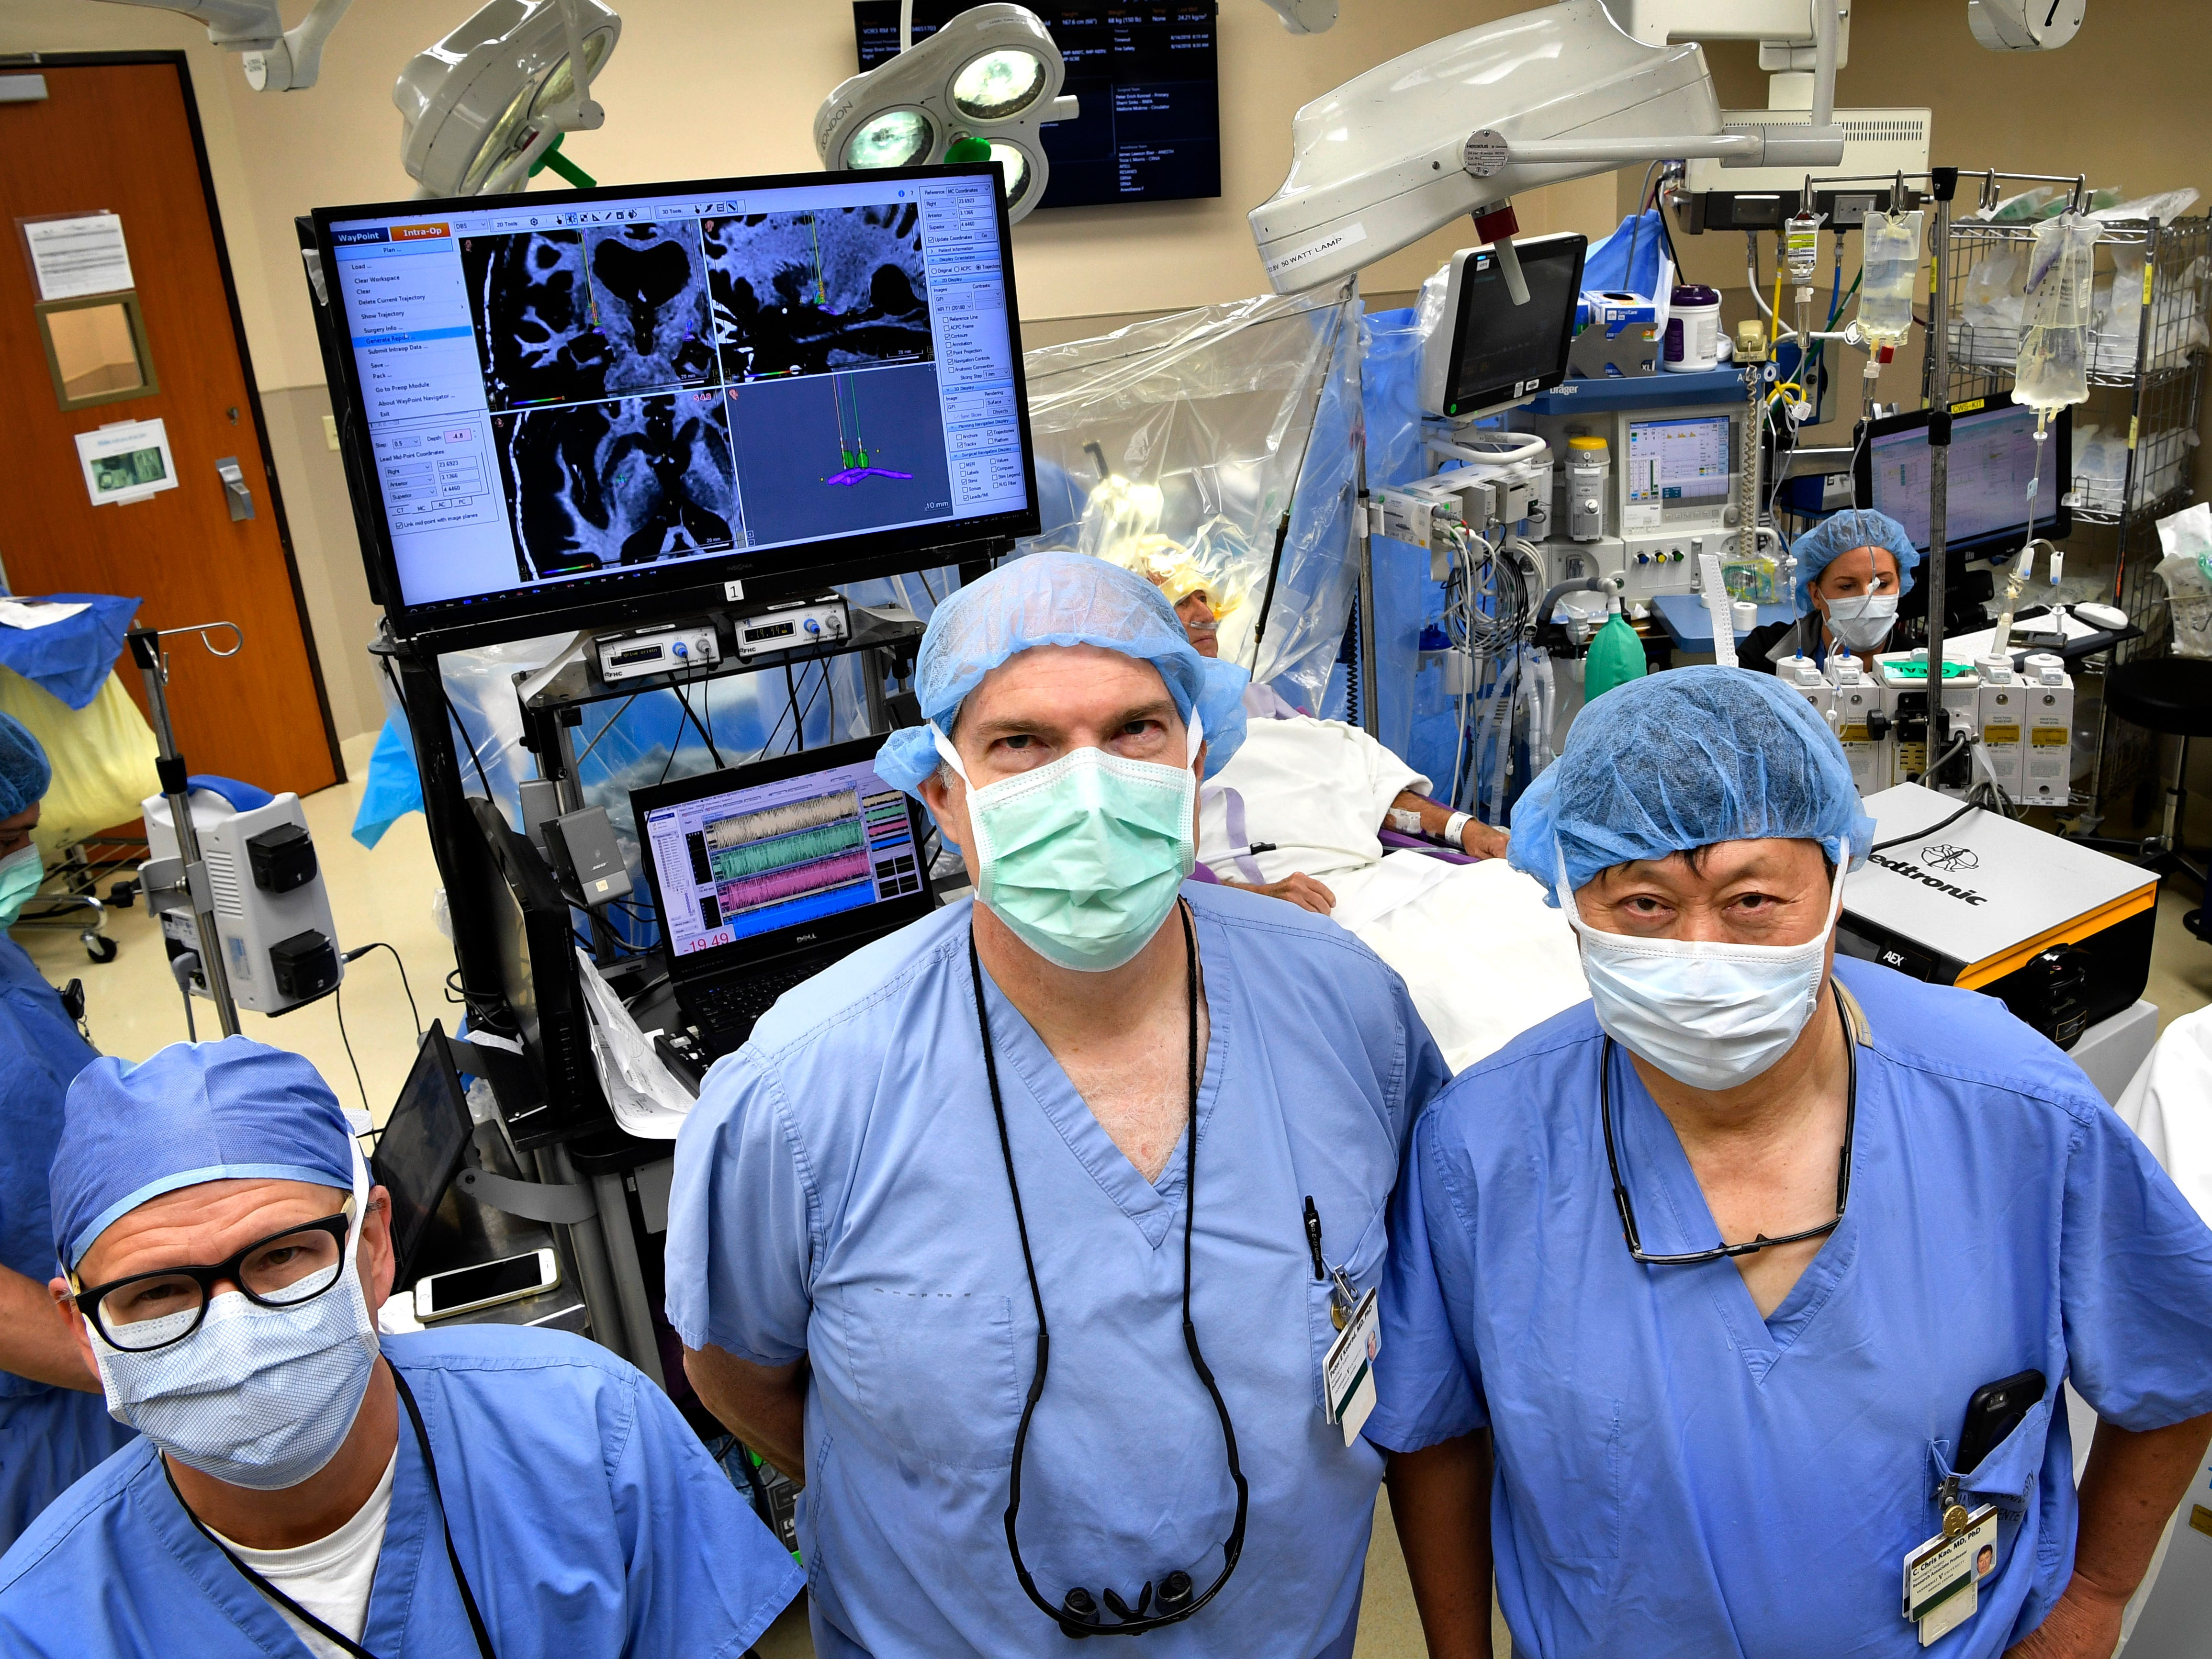 From left, neurologist Dr. Tom Davis, neurosurgeon Dr. Peter Konrad, and  neurophysiologist Dr. C. Chris Kao, pose for a photo inside the operating room after performing a Deep Brain Stimulation surgery at Vanderbilt University Medical Center on Tuesday Aug. 14, 2018.